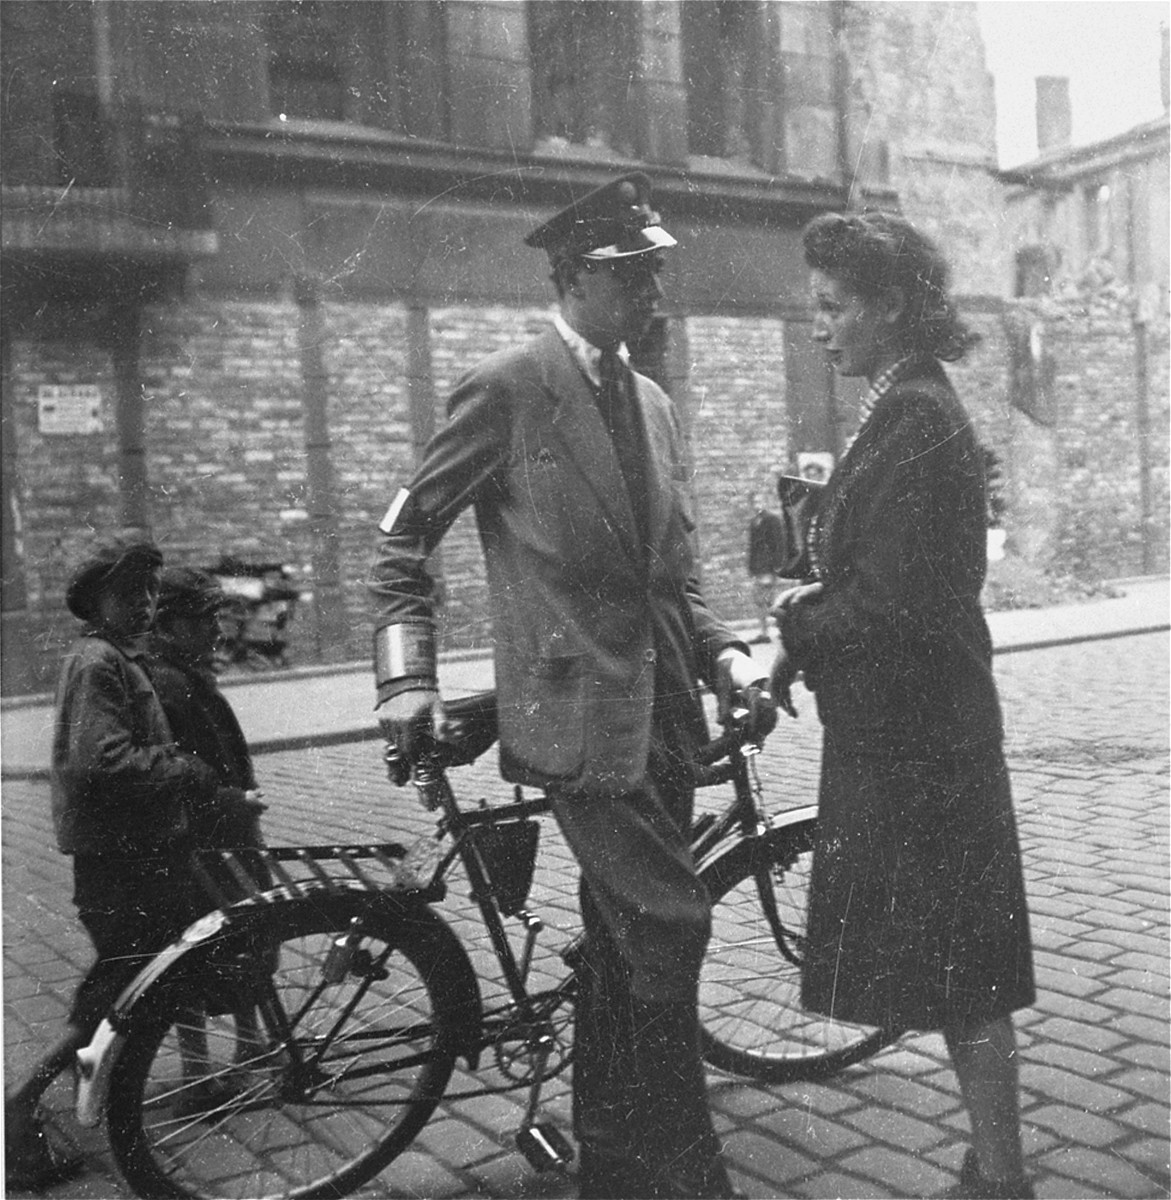 """A Jewish policeman speaks with a woman on the street in the Warsaw ghetto.    Joest's captions reads: """"It looked like a flirtation, this brief encounter between a young woman and the handsome policeman, but the begging children in the background provided a contrast."""""""